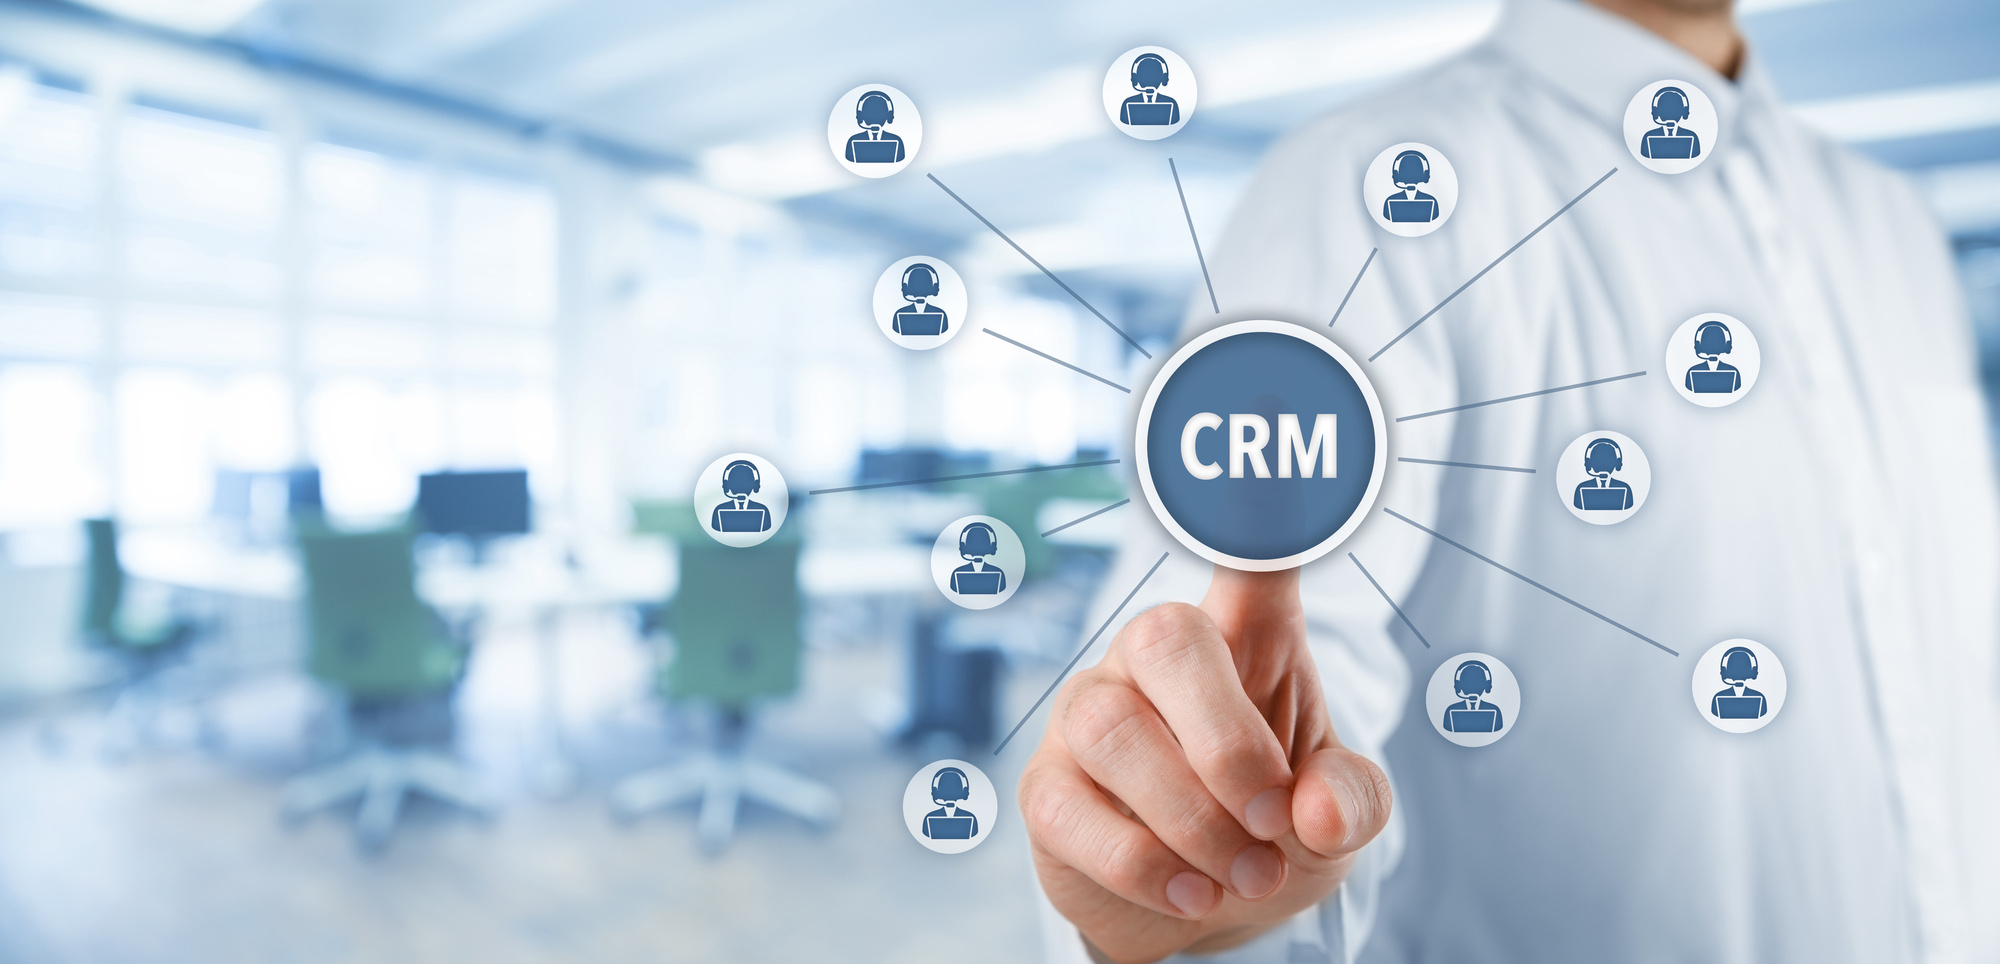 8 Home Truths That Stress the Importance of CRM